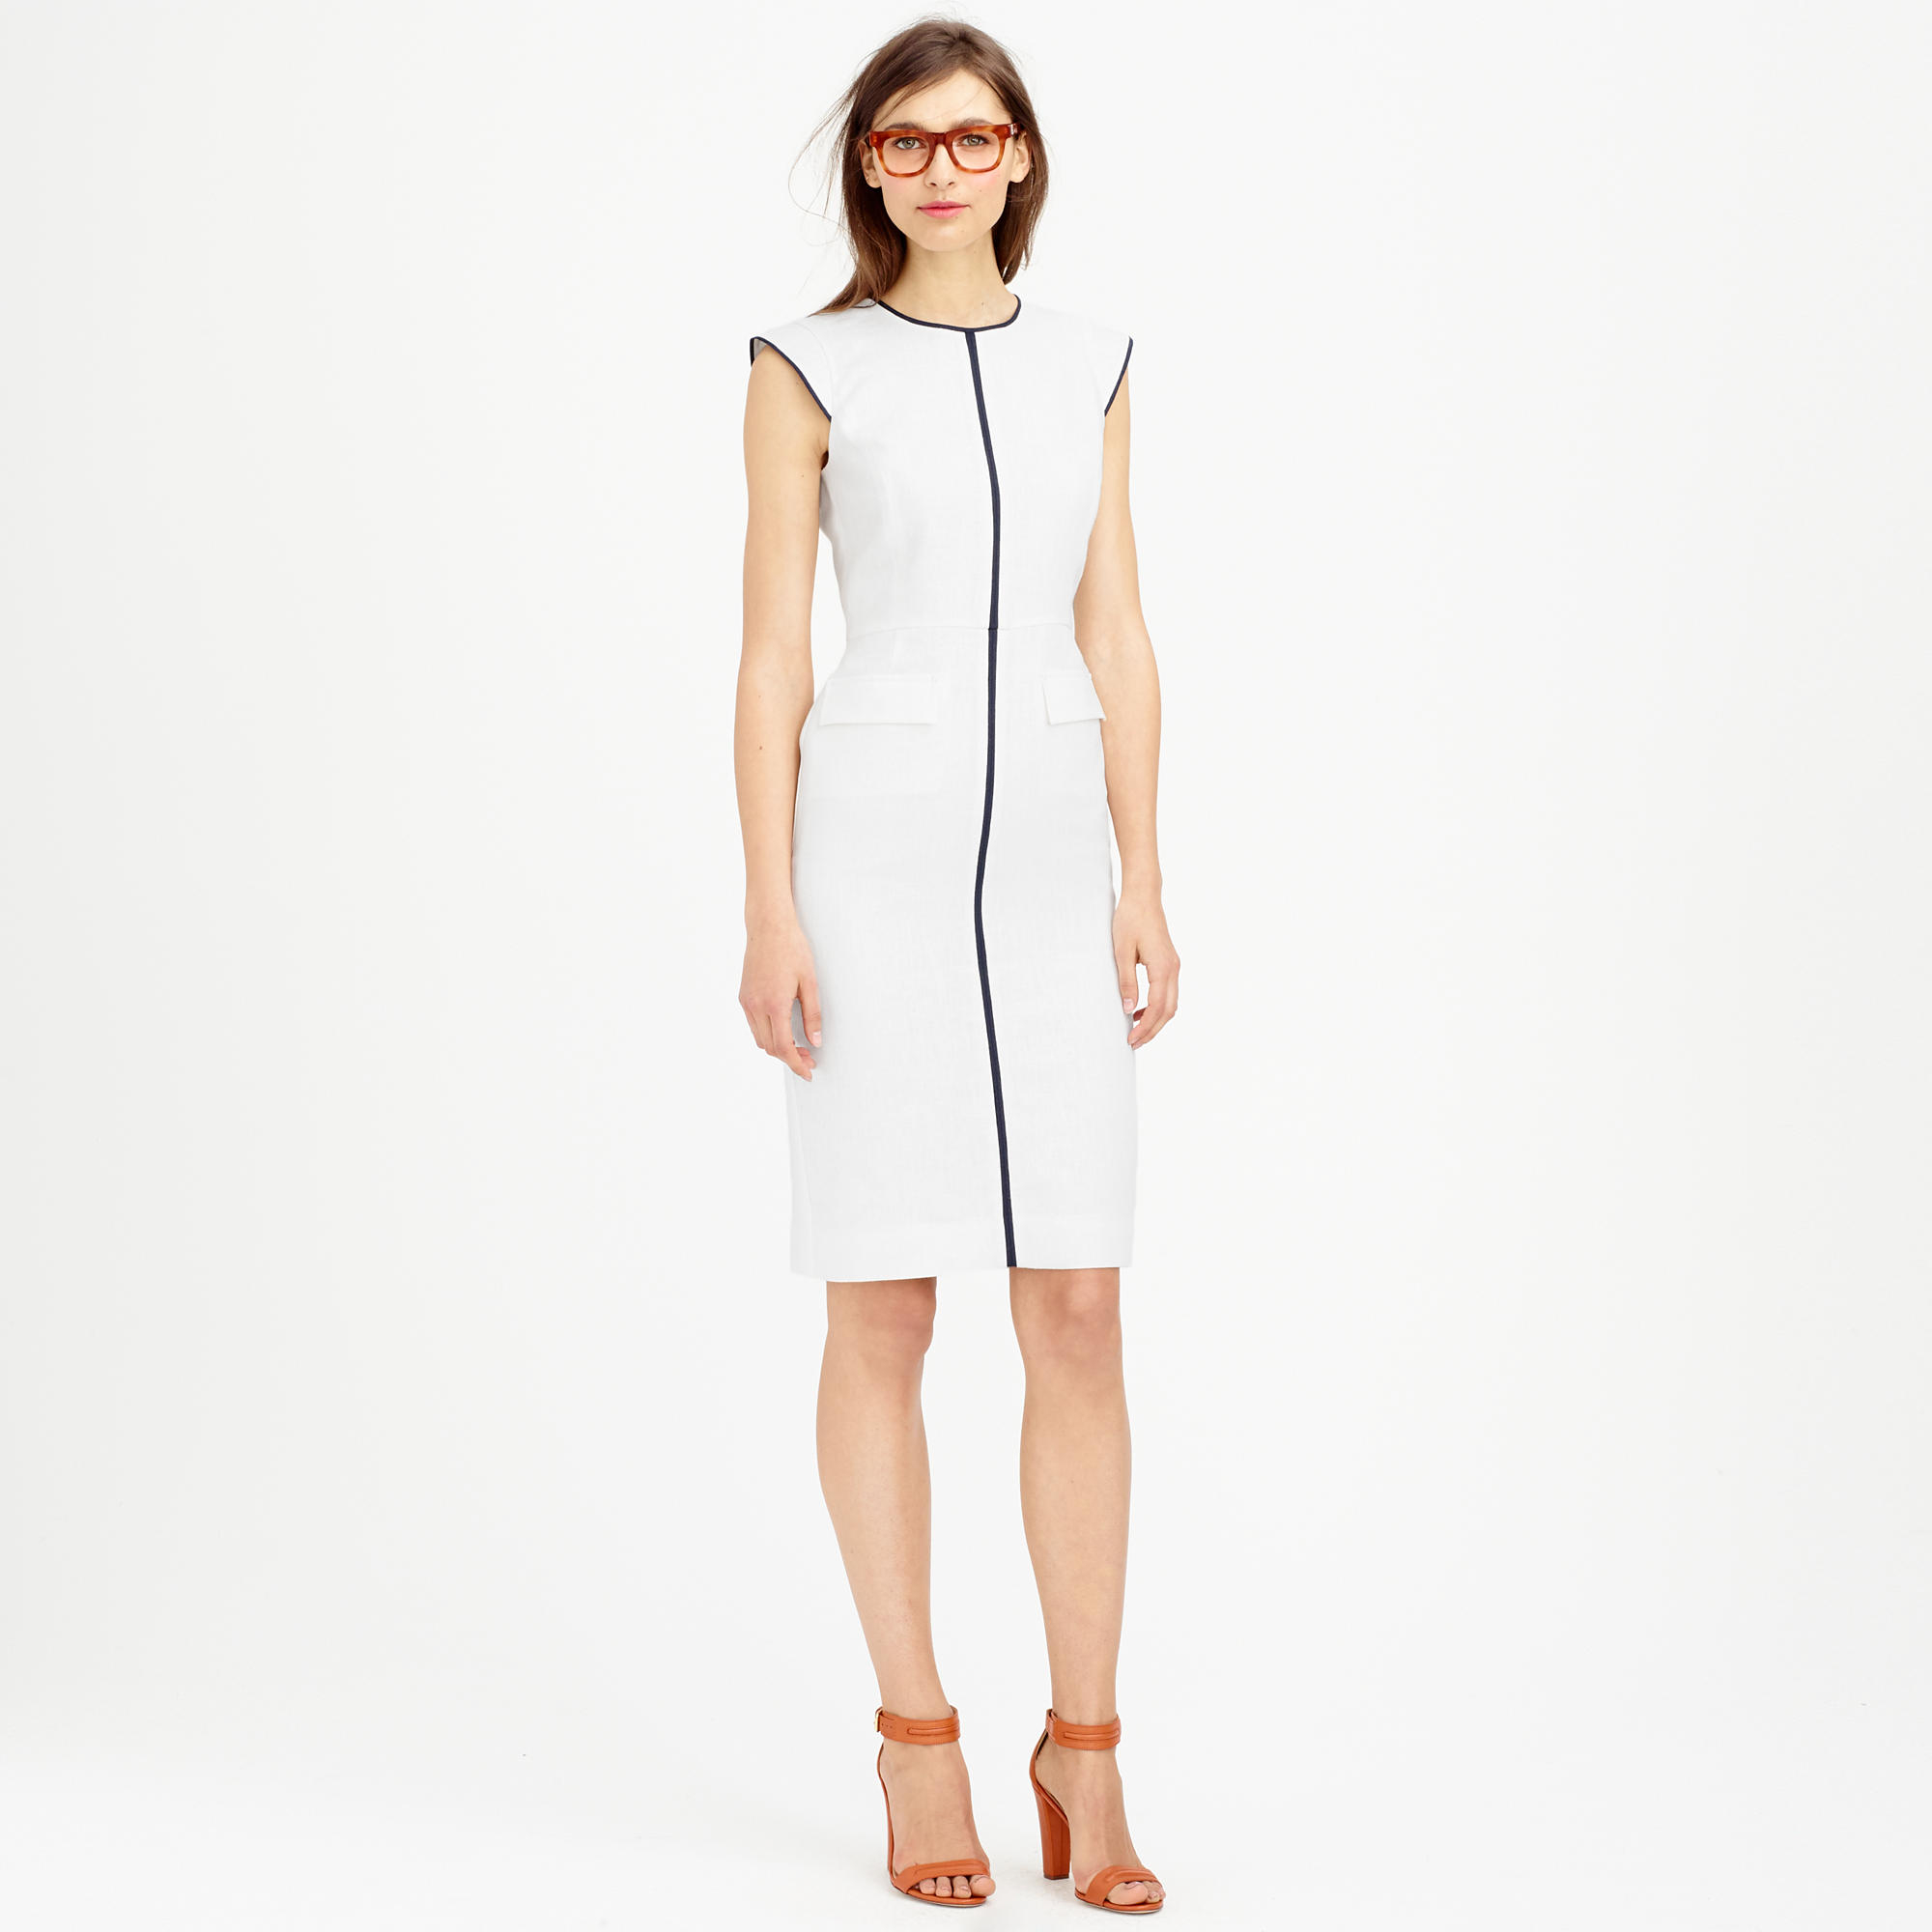 b61ca2c919b Lyst - J.Crew Petite Patch-pocket Sheath Dress In Tipped Linen in White